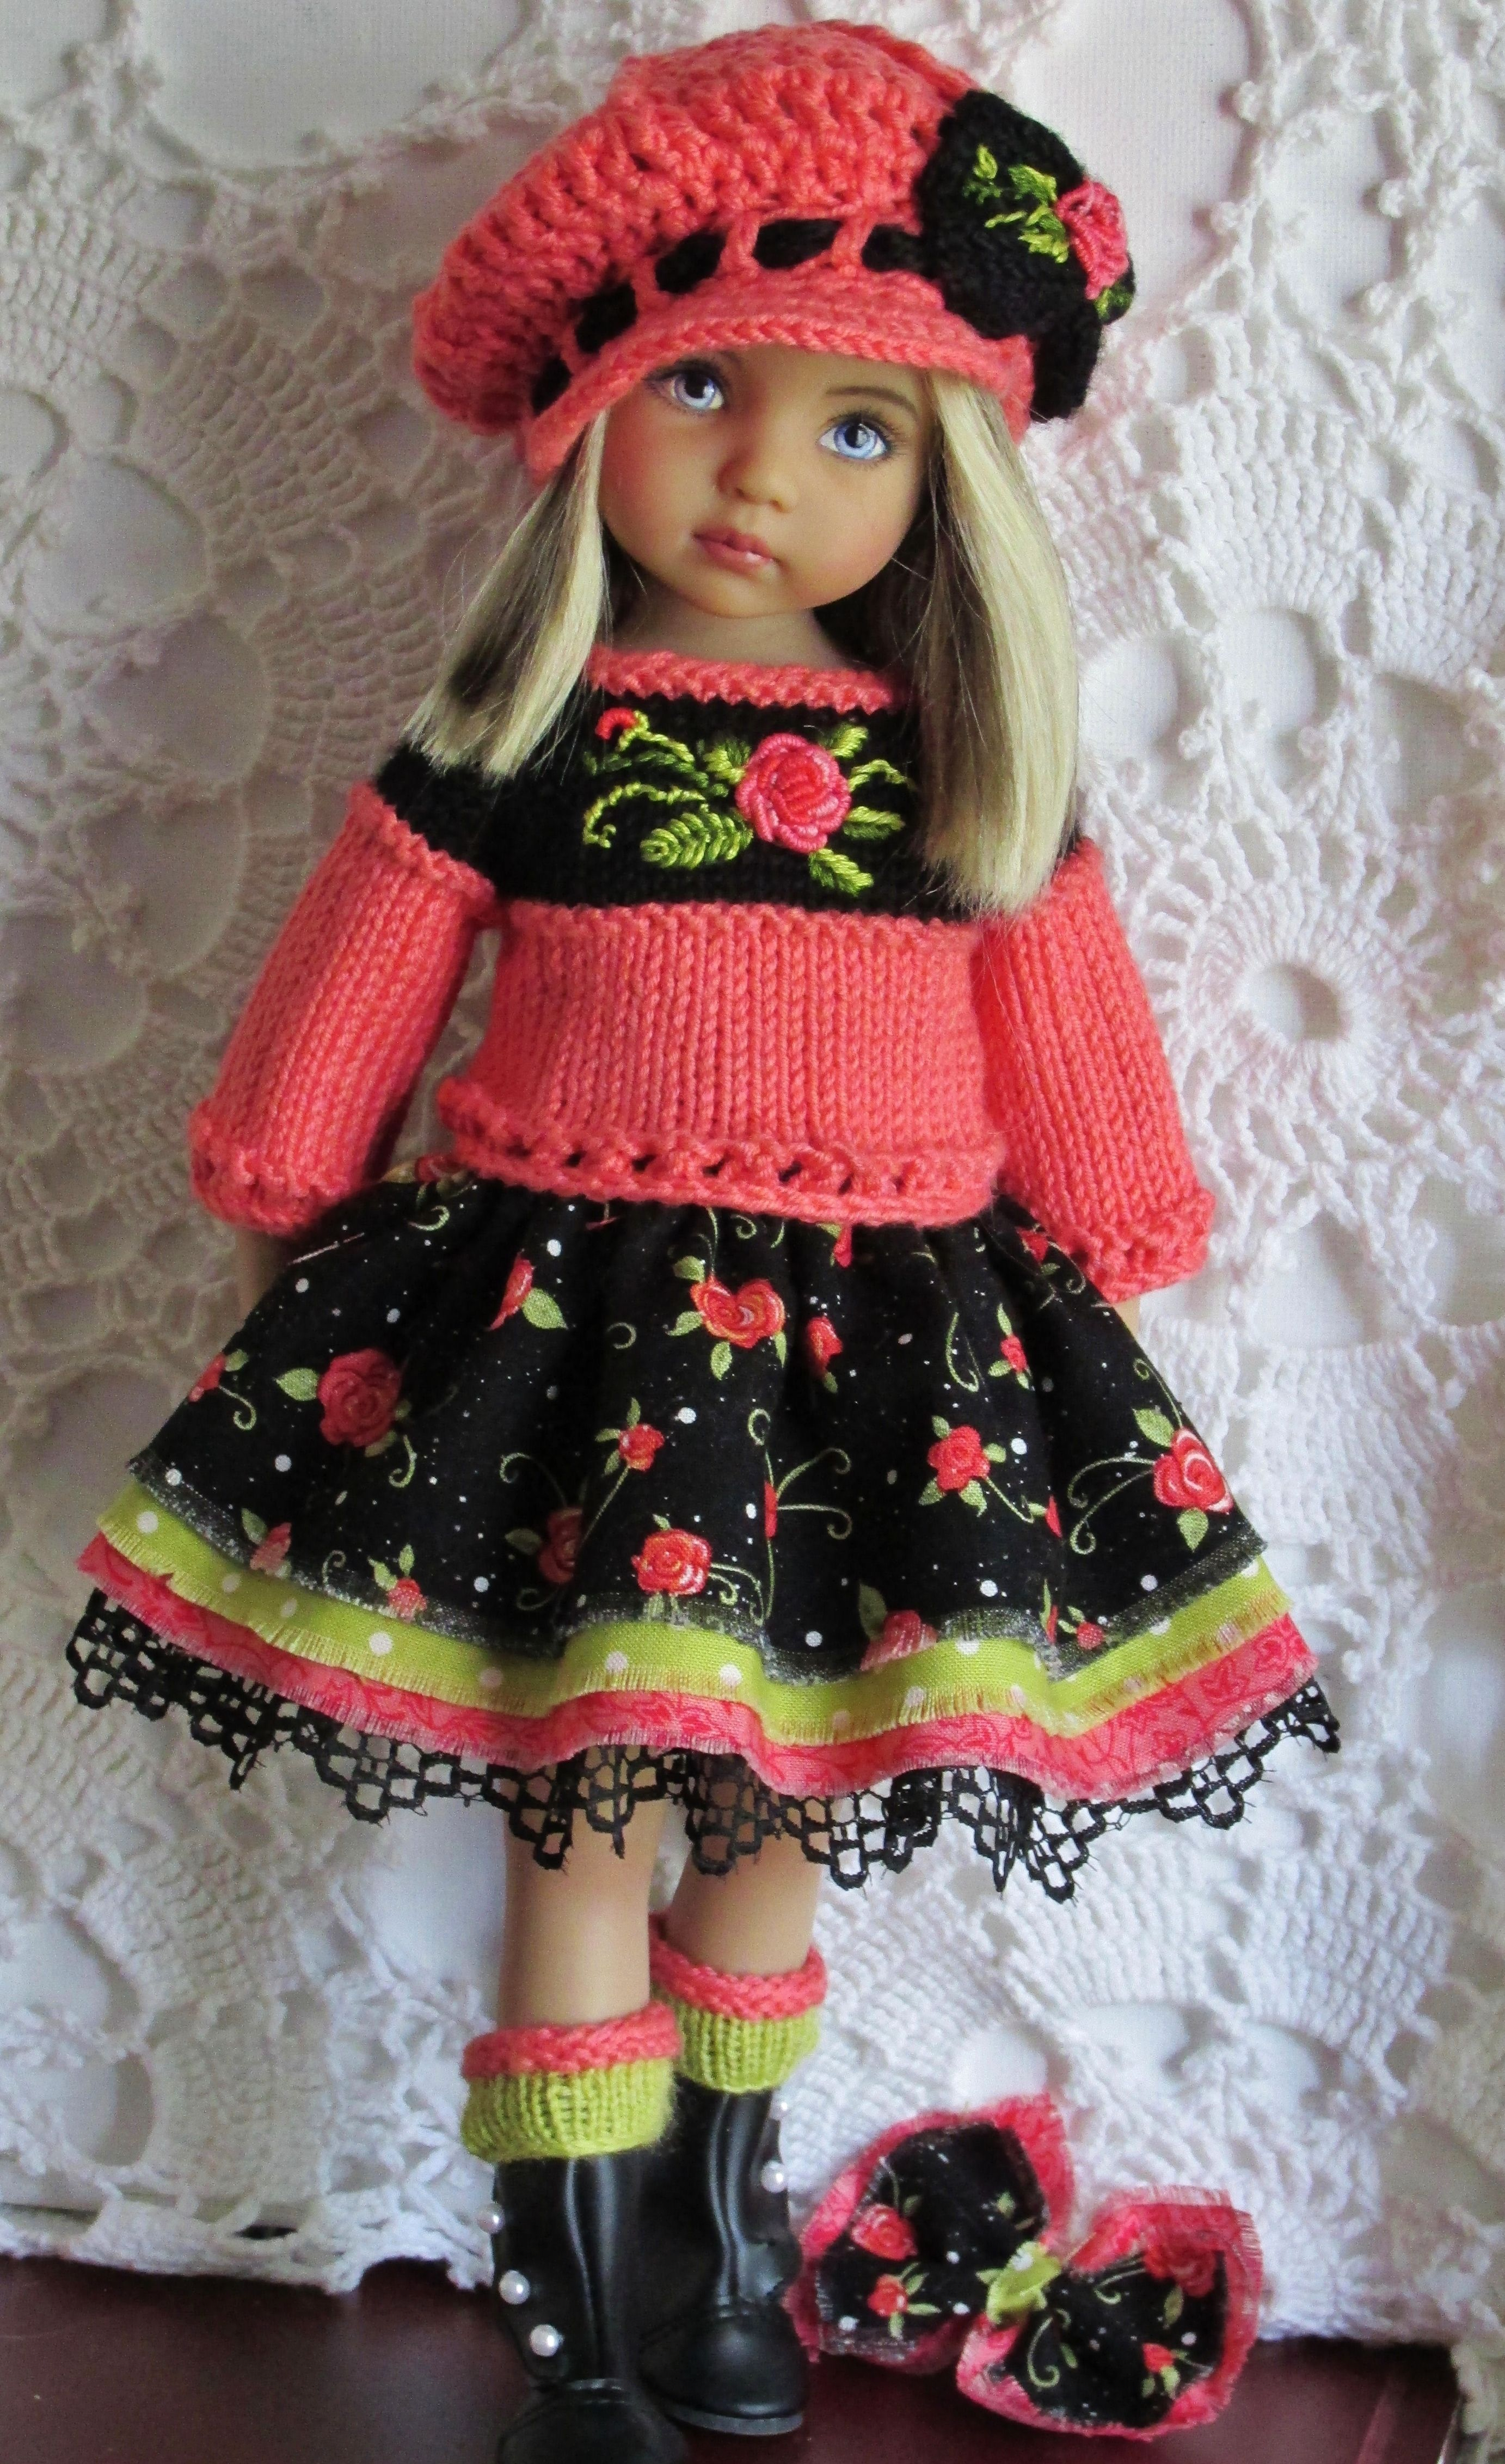 Handmade By Kalypso's Doll Boutique Ebay:Kalyinny | Effner Little ...